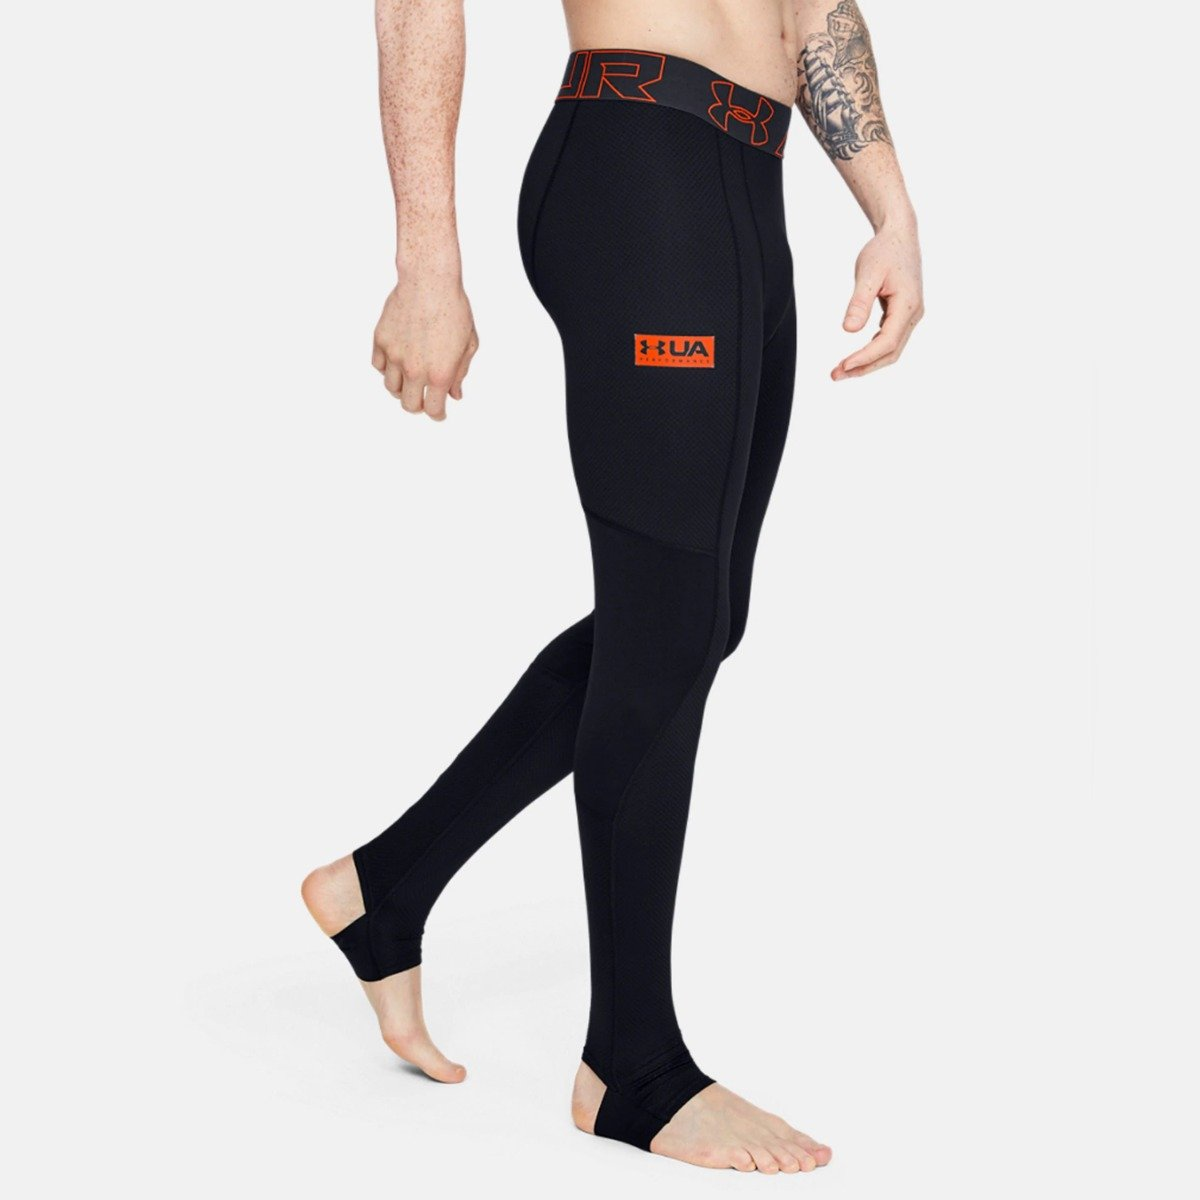 Under Armour Colanti de compresie pentru bărbati Gametime Compress Gear Legging Black XXL